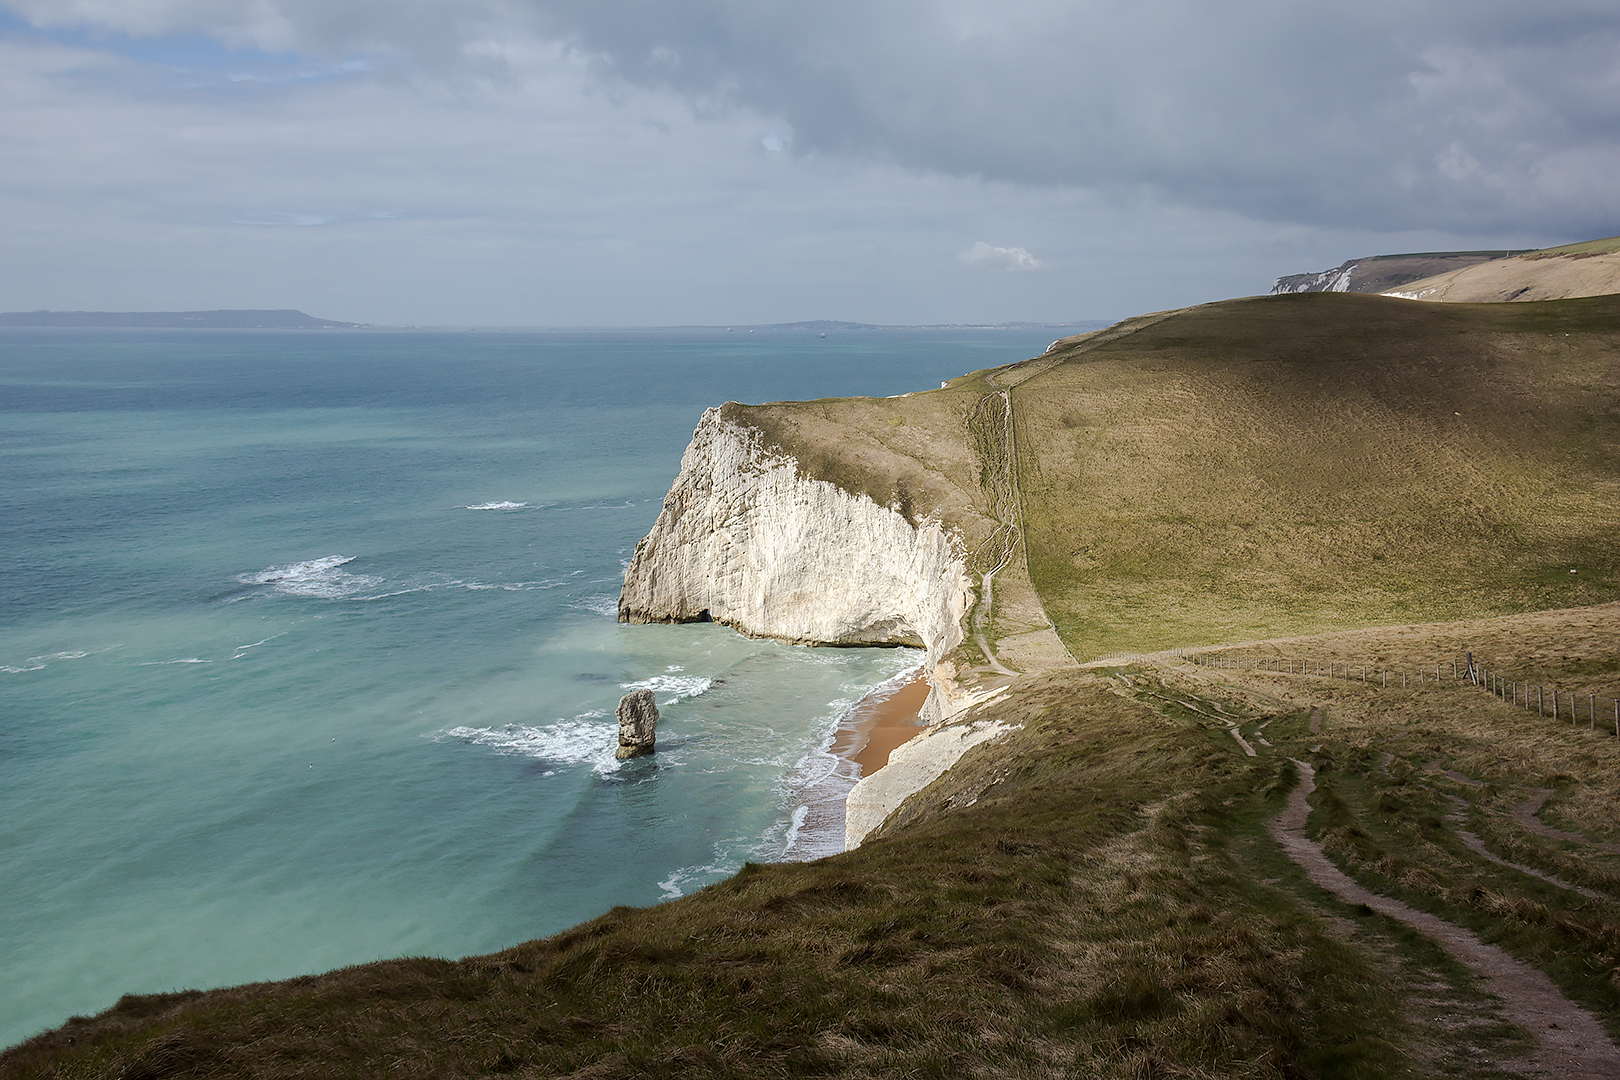 The landscape near Durdle Door